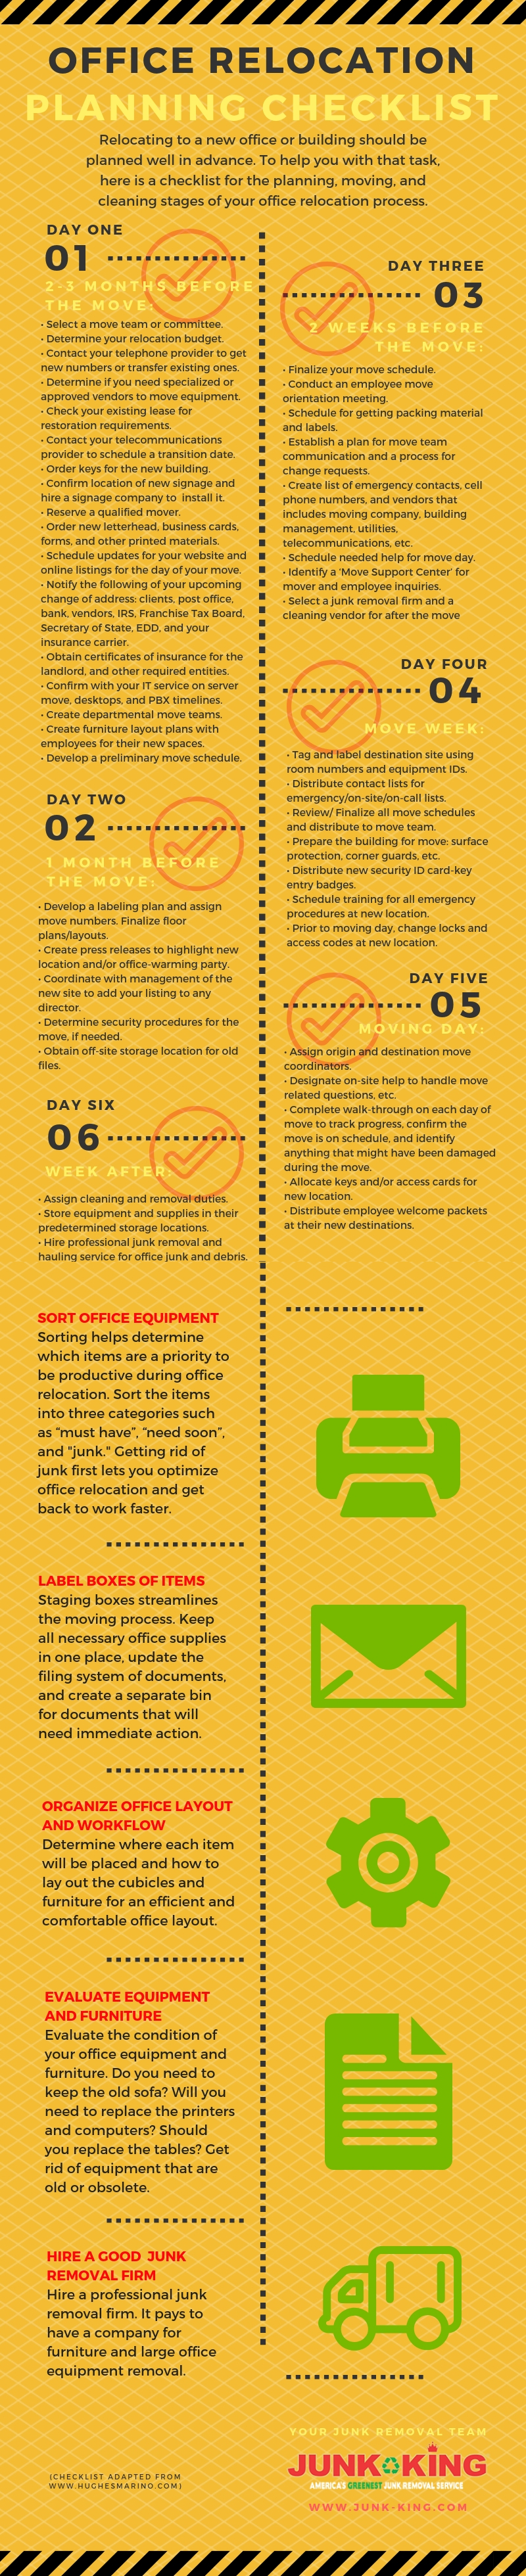 Office Relocation Planning Checklist